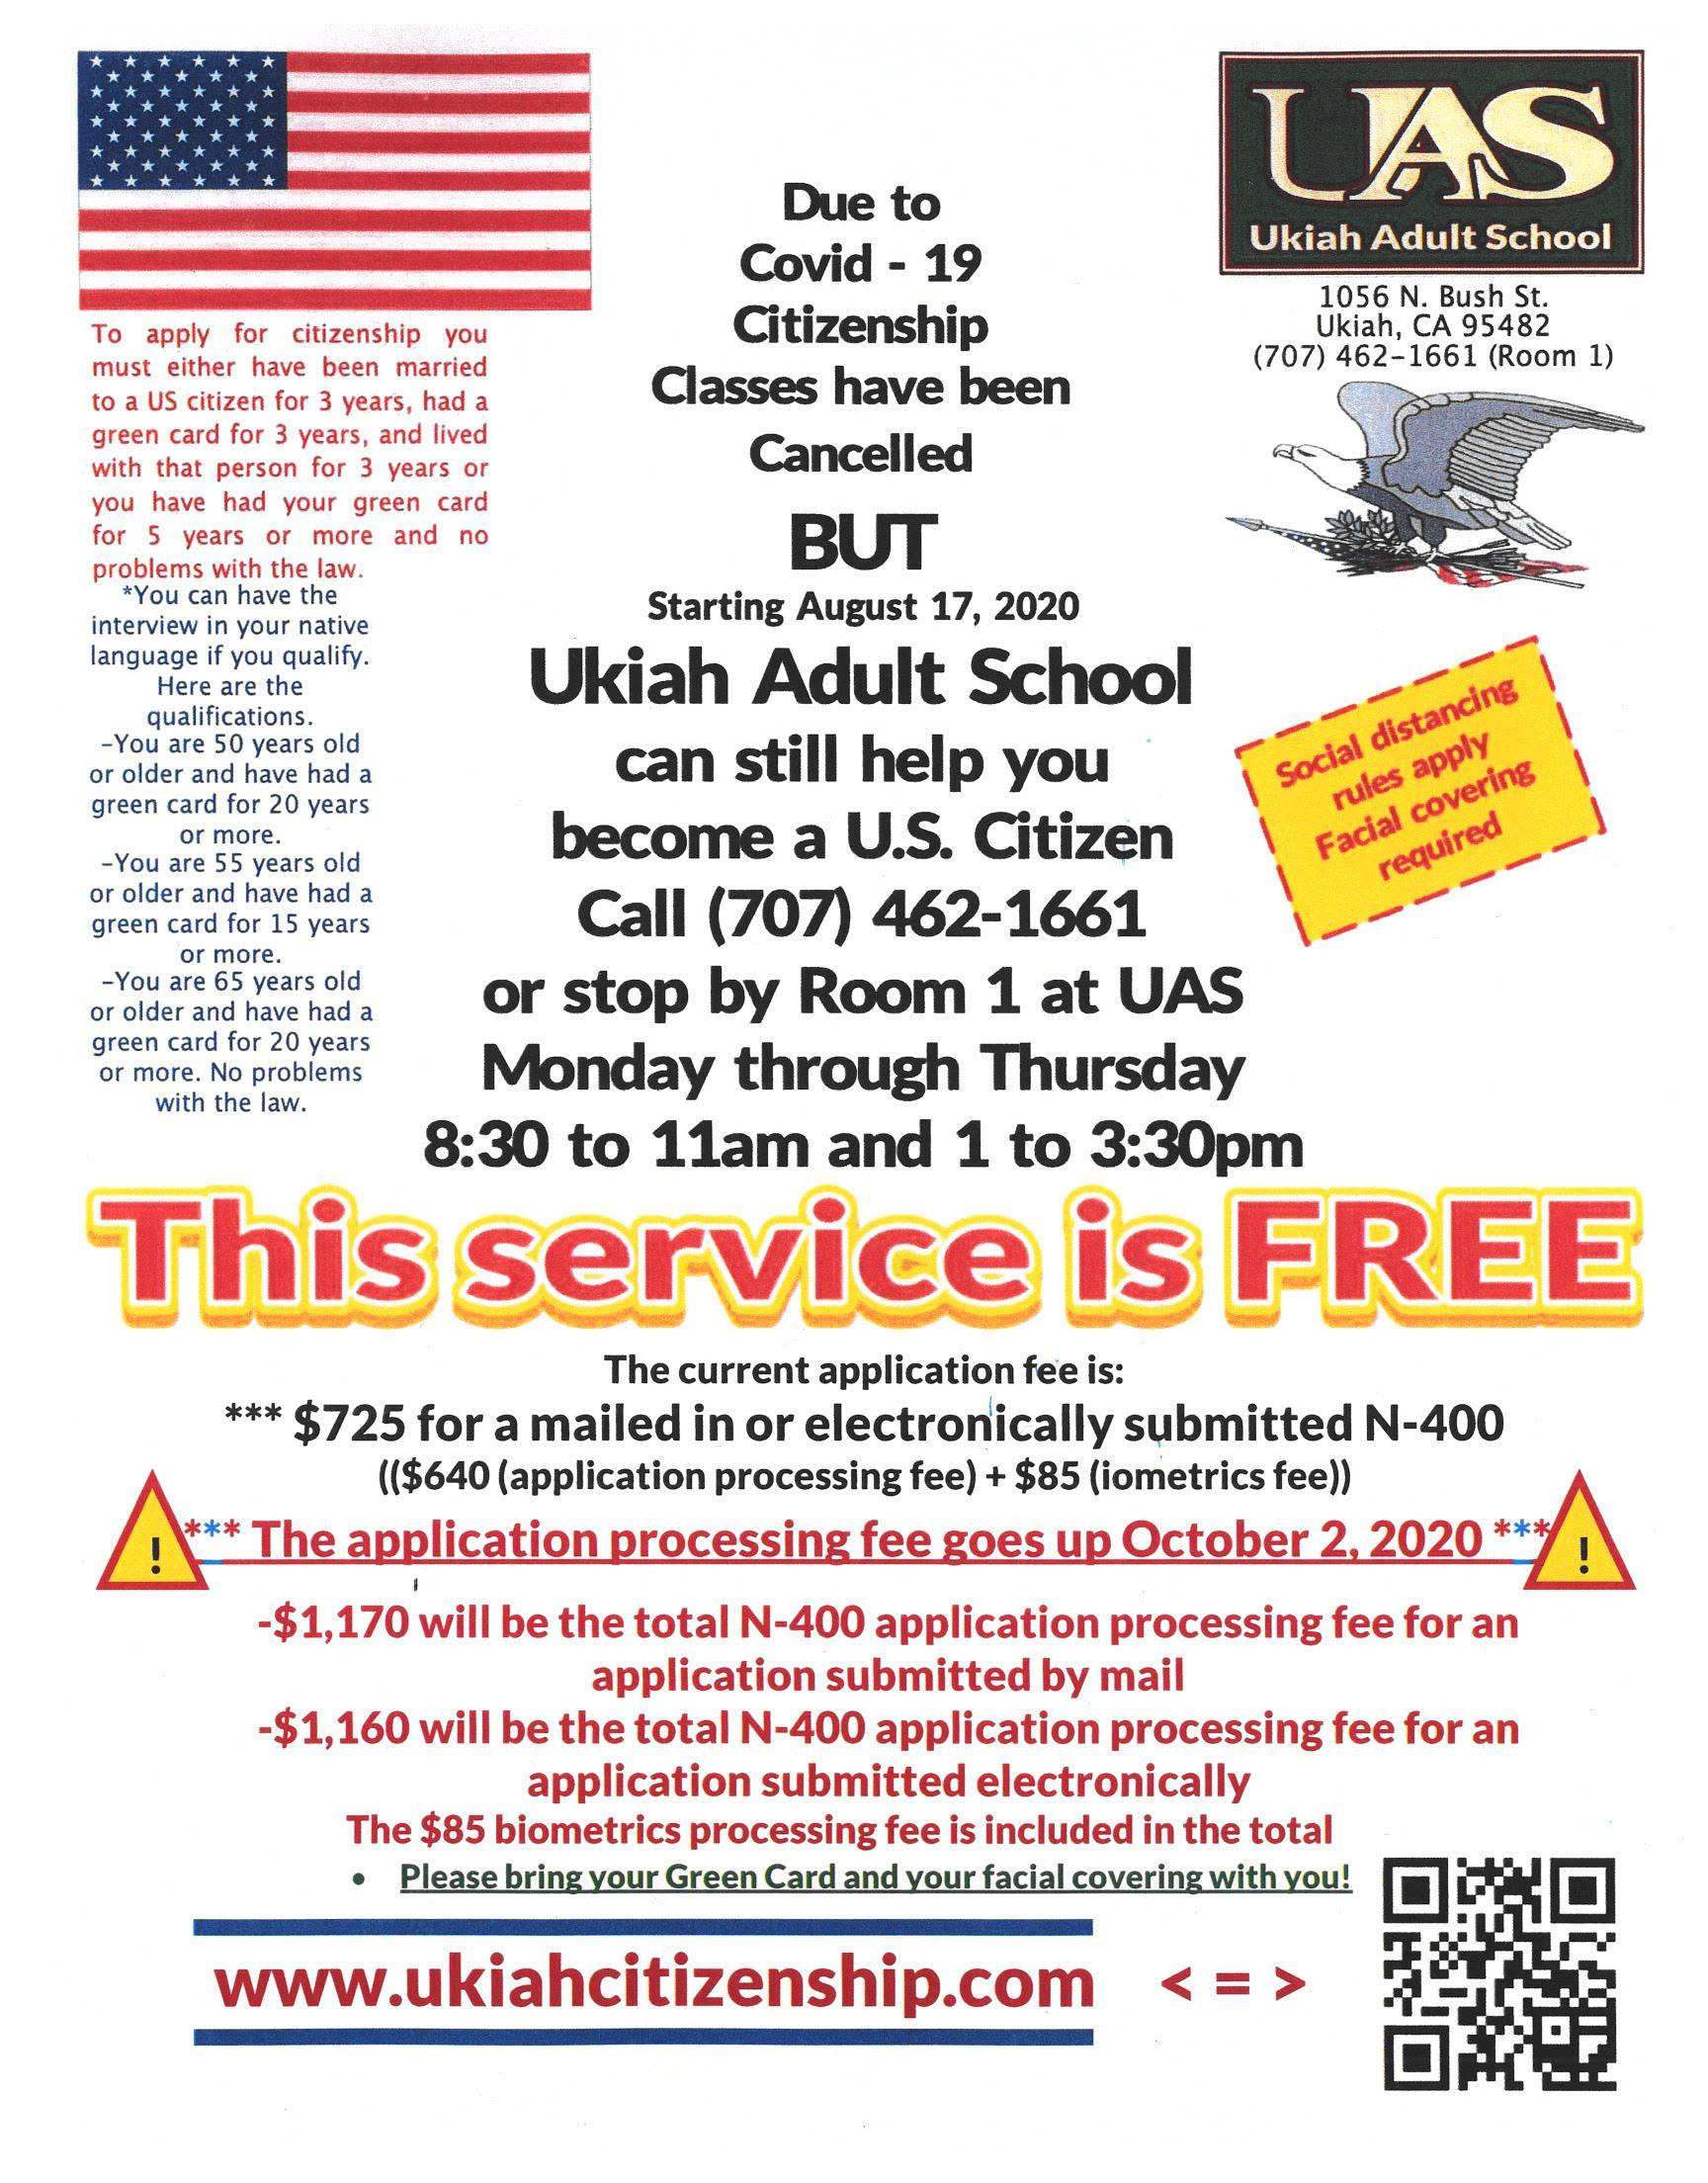 Up-dated fall 2020 citizenship poster the $85 biometrics fee is included in the total.  The fe goes up October 2, 2020.